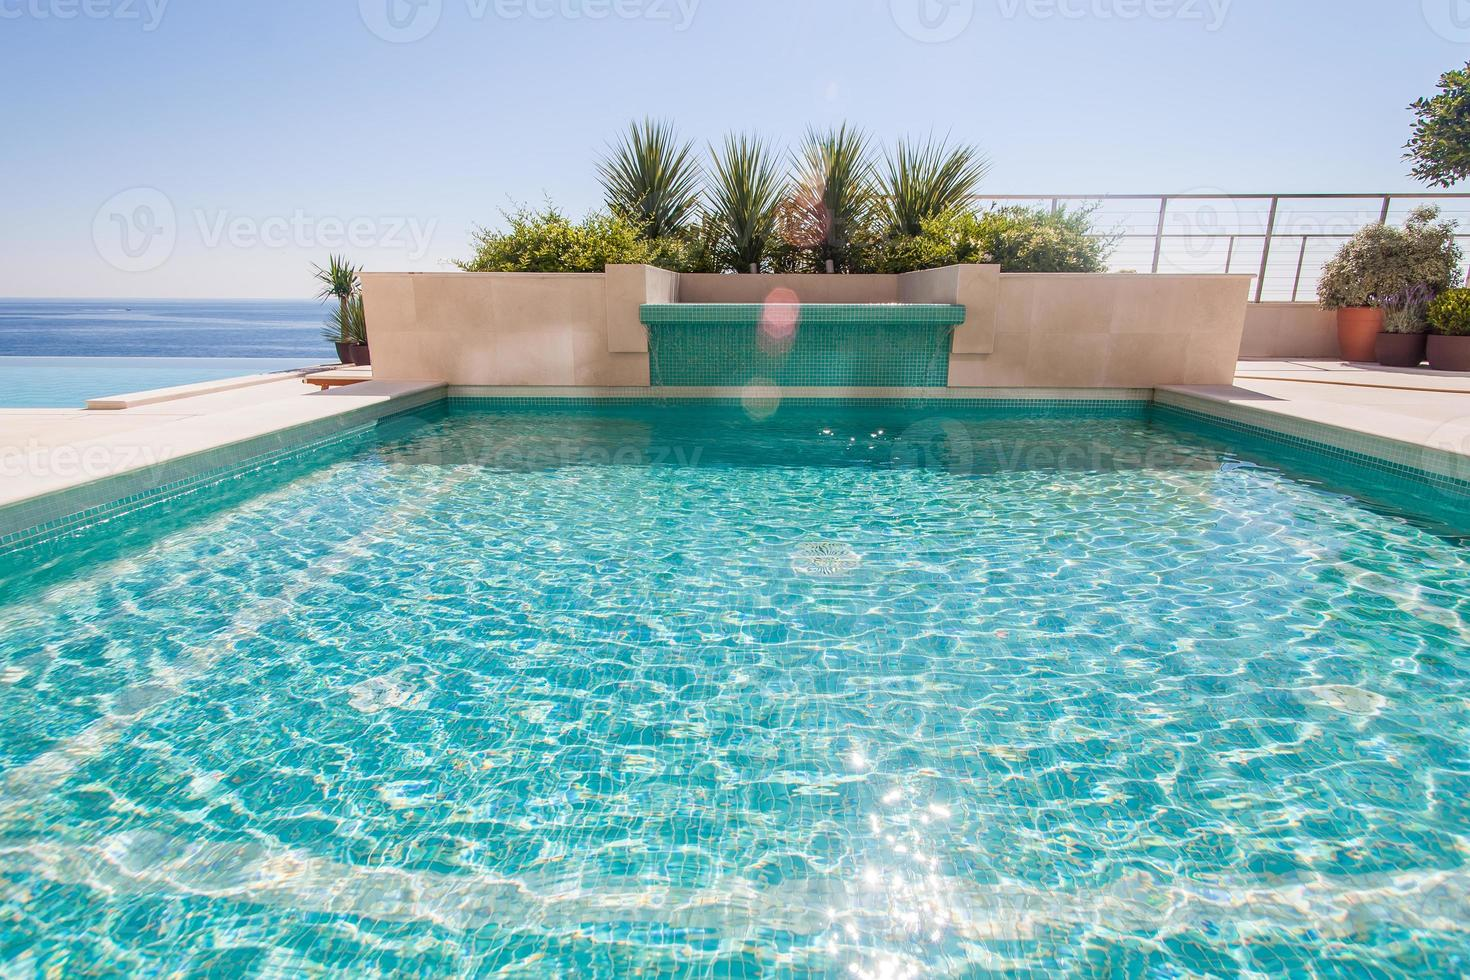 Luxury swimming pool and blue water photo